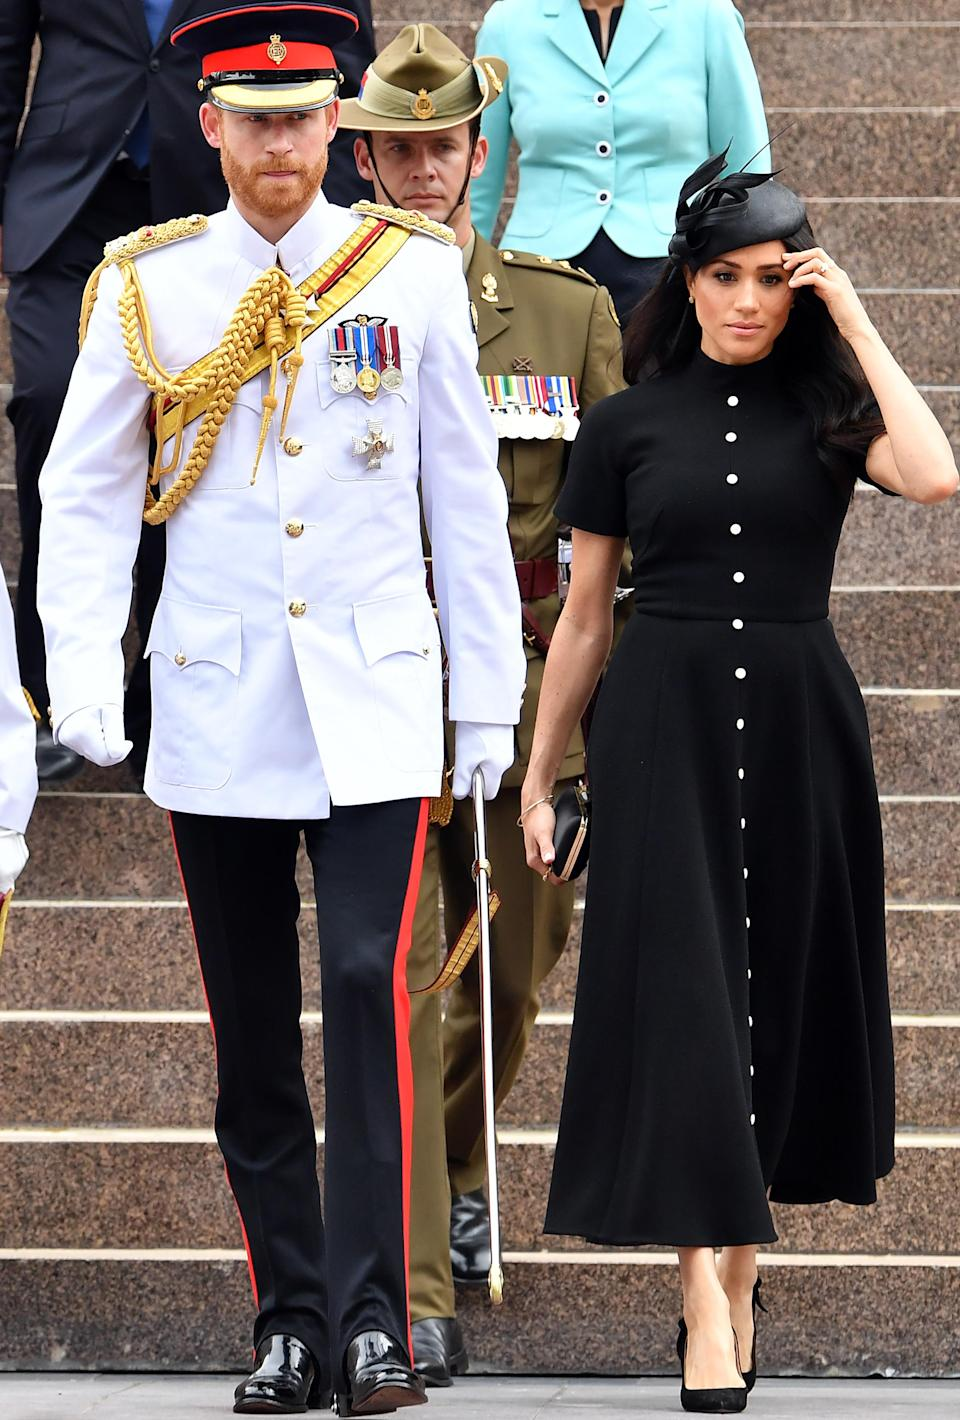 <p>At the ANZAC memorial day in Sydney, Meghan opted for Emilia Wickstead's £1,595 'Camilla' black wool crepe midi dress, with a Philip Treacy hat, a Givenchy clutch bag andTabitha Simmons slingback pumps [Photo: Getty] </p>